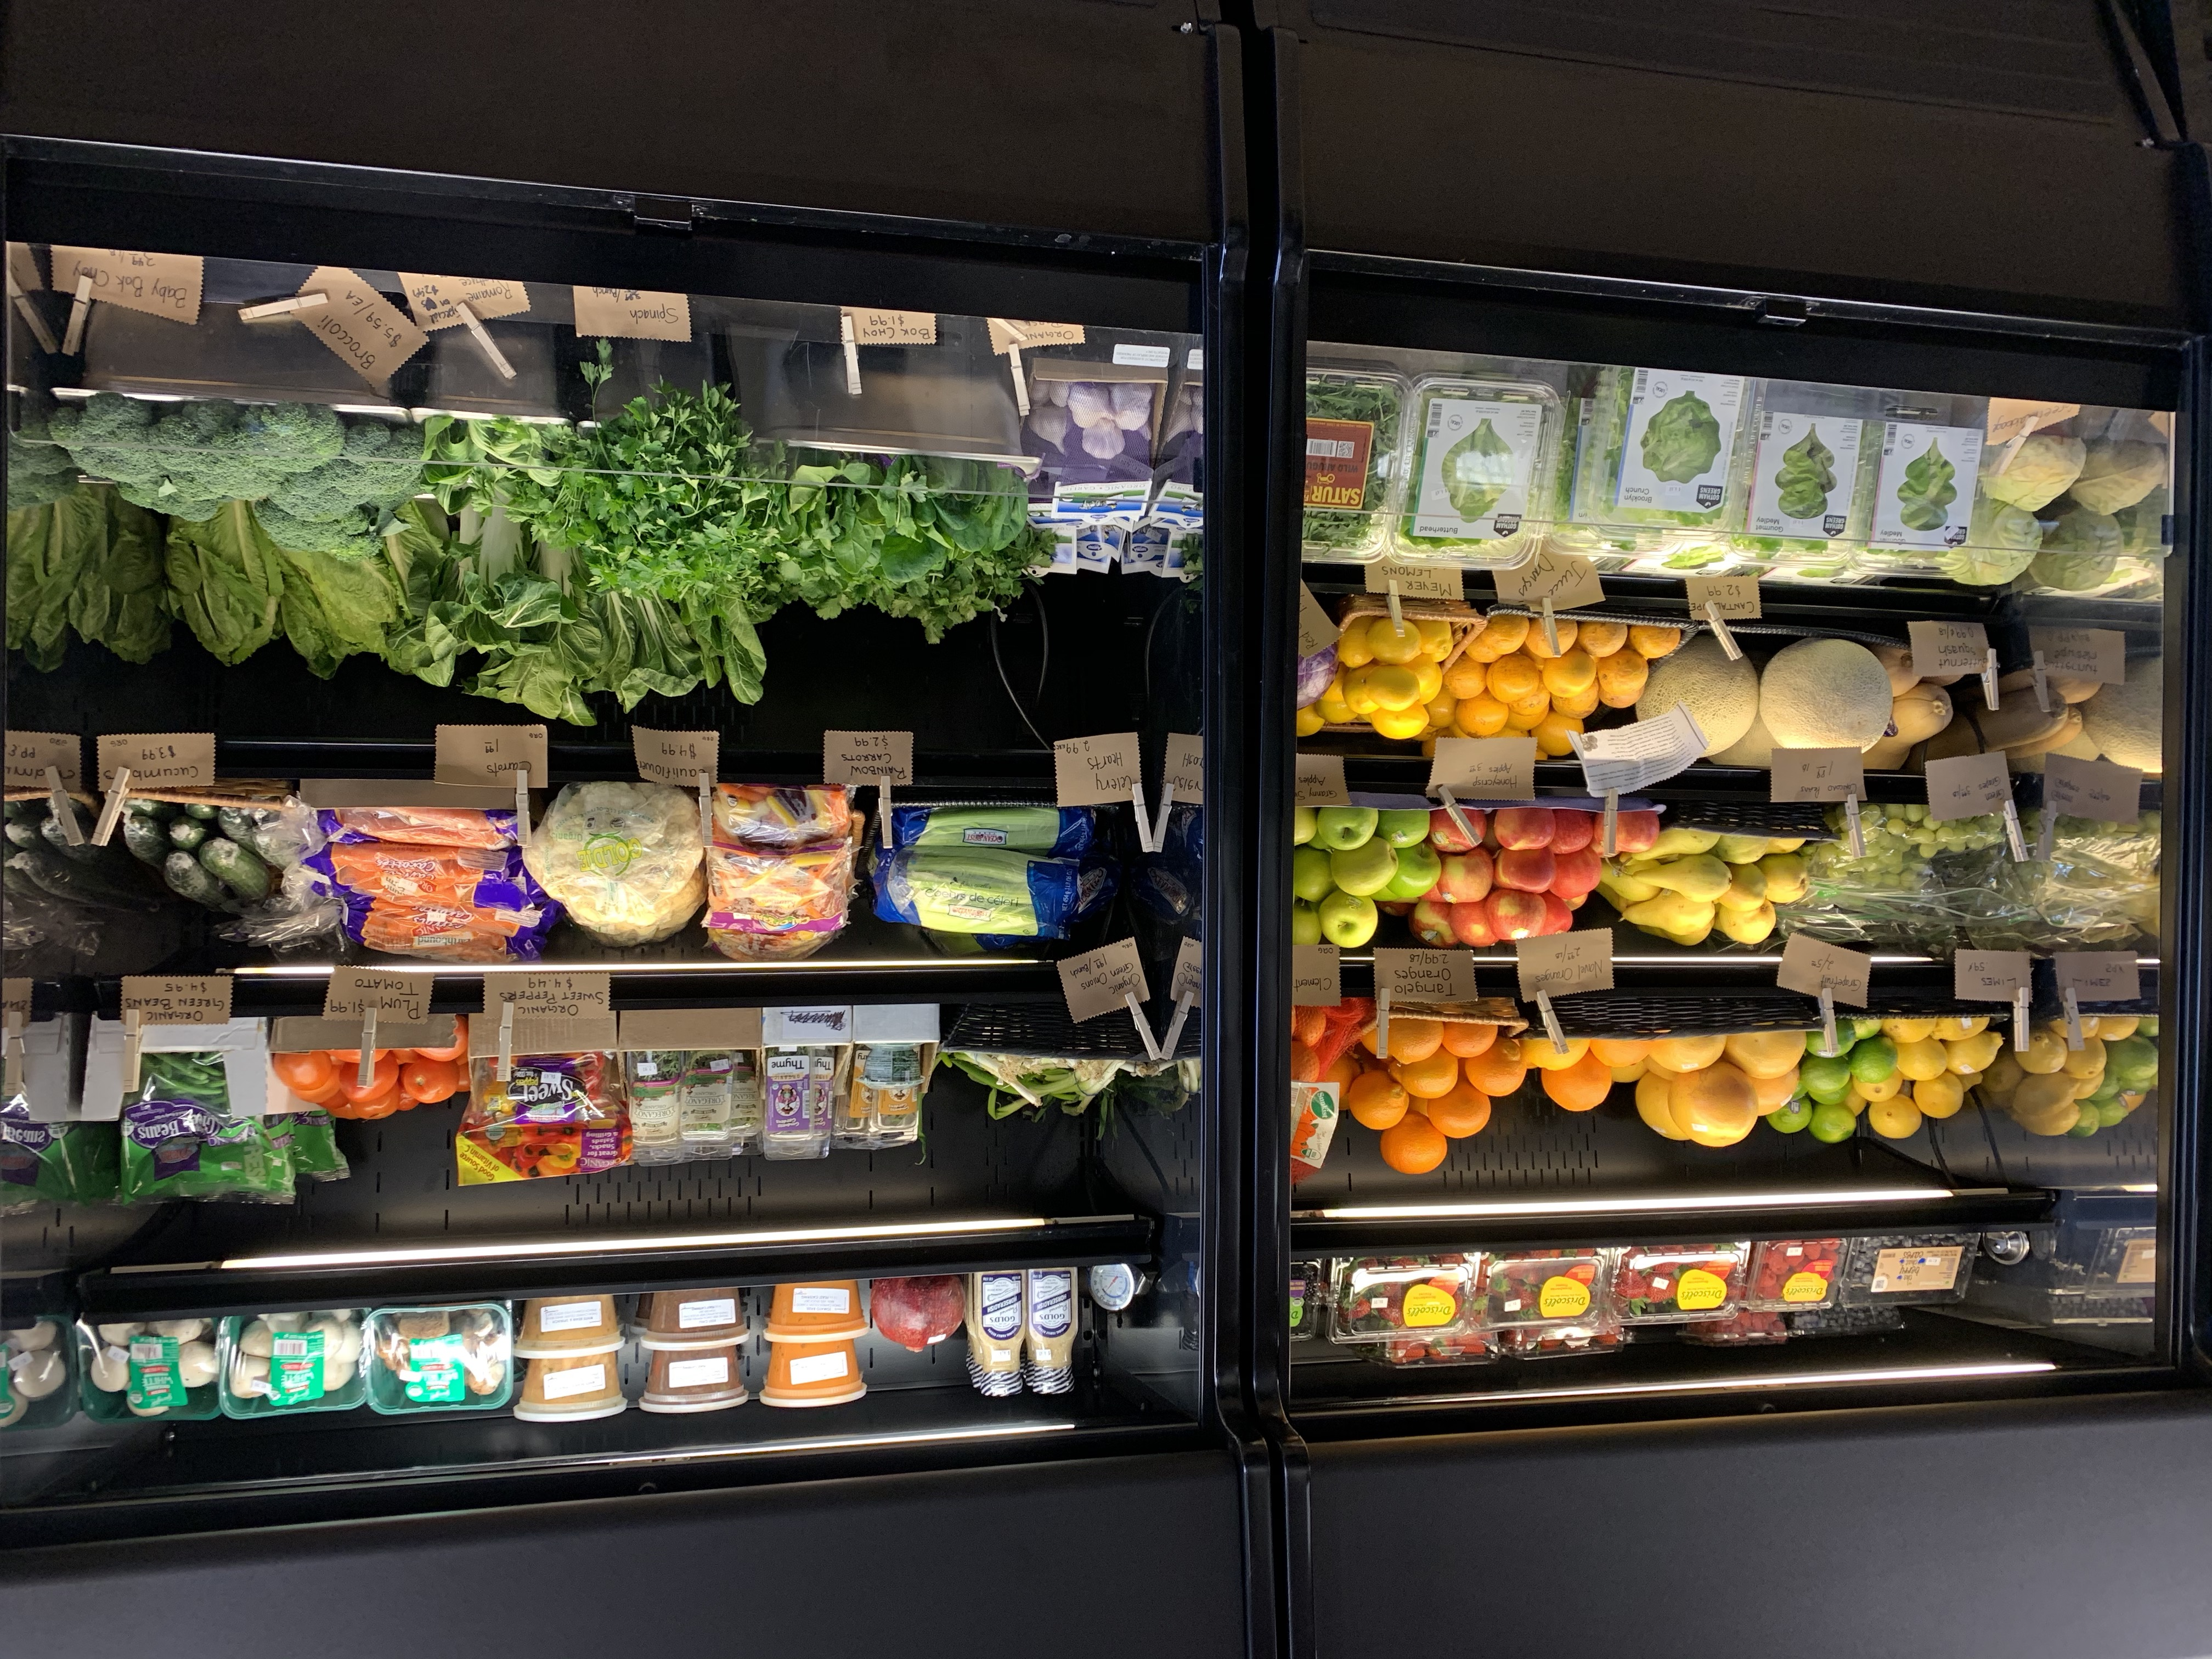 A photo of two black produce fridges with no door. On the shelves are assorted greens and fruits, as well as packaged berries , mushrooms, soups, and herbs.